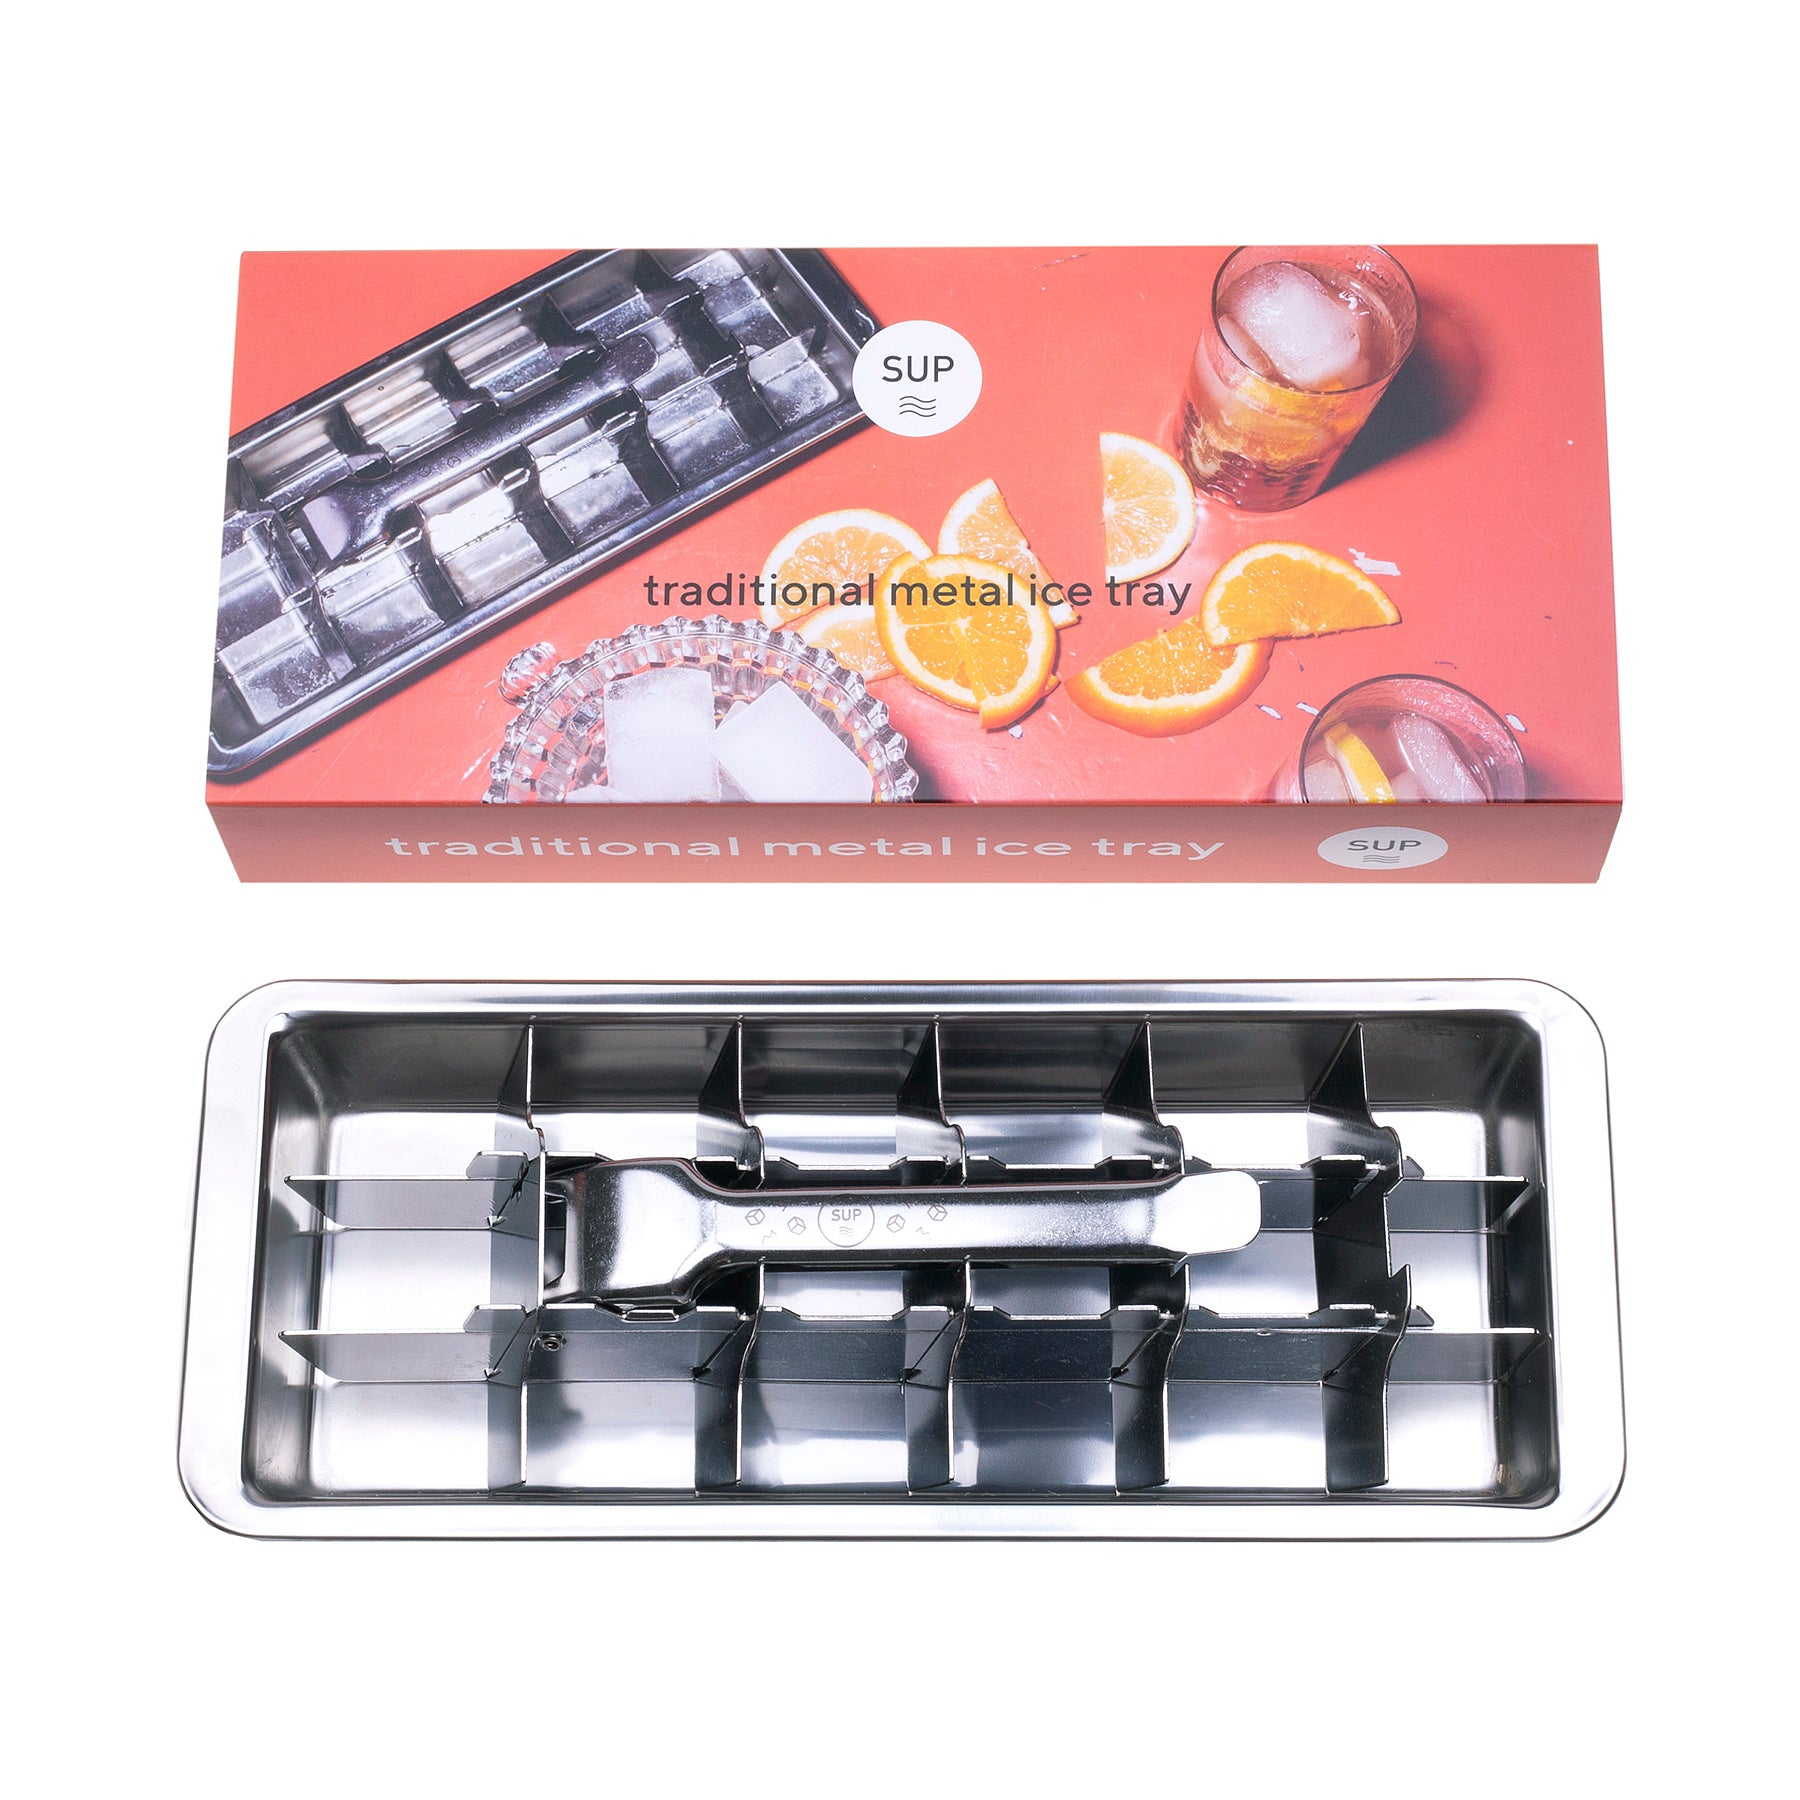 Traditional metal ice tray